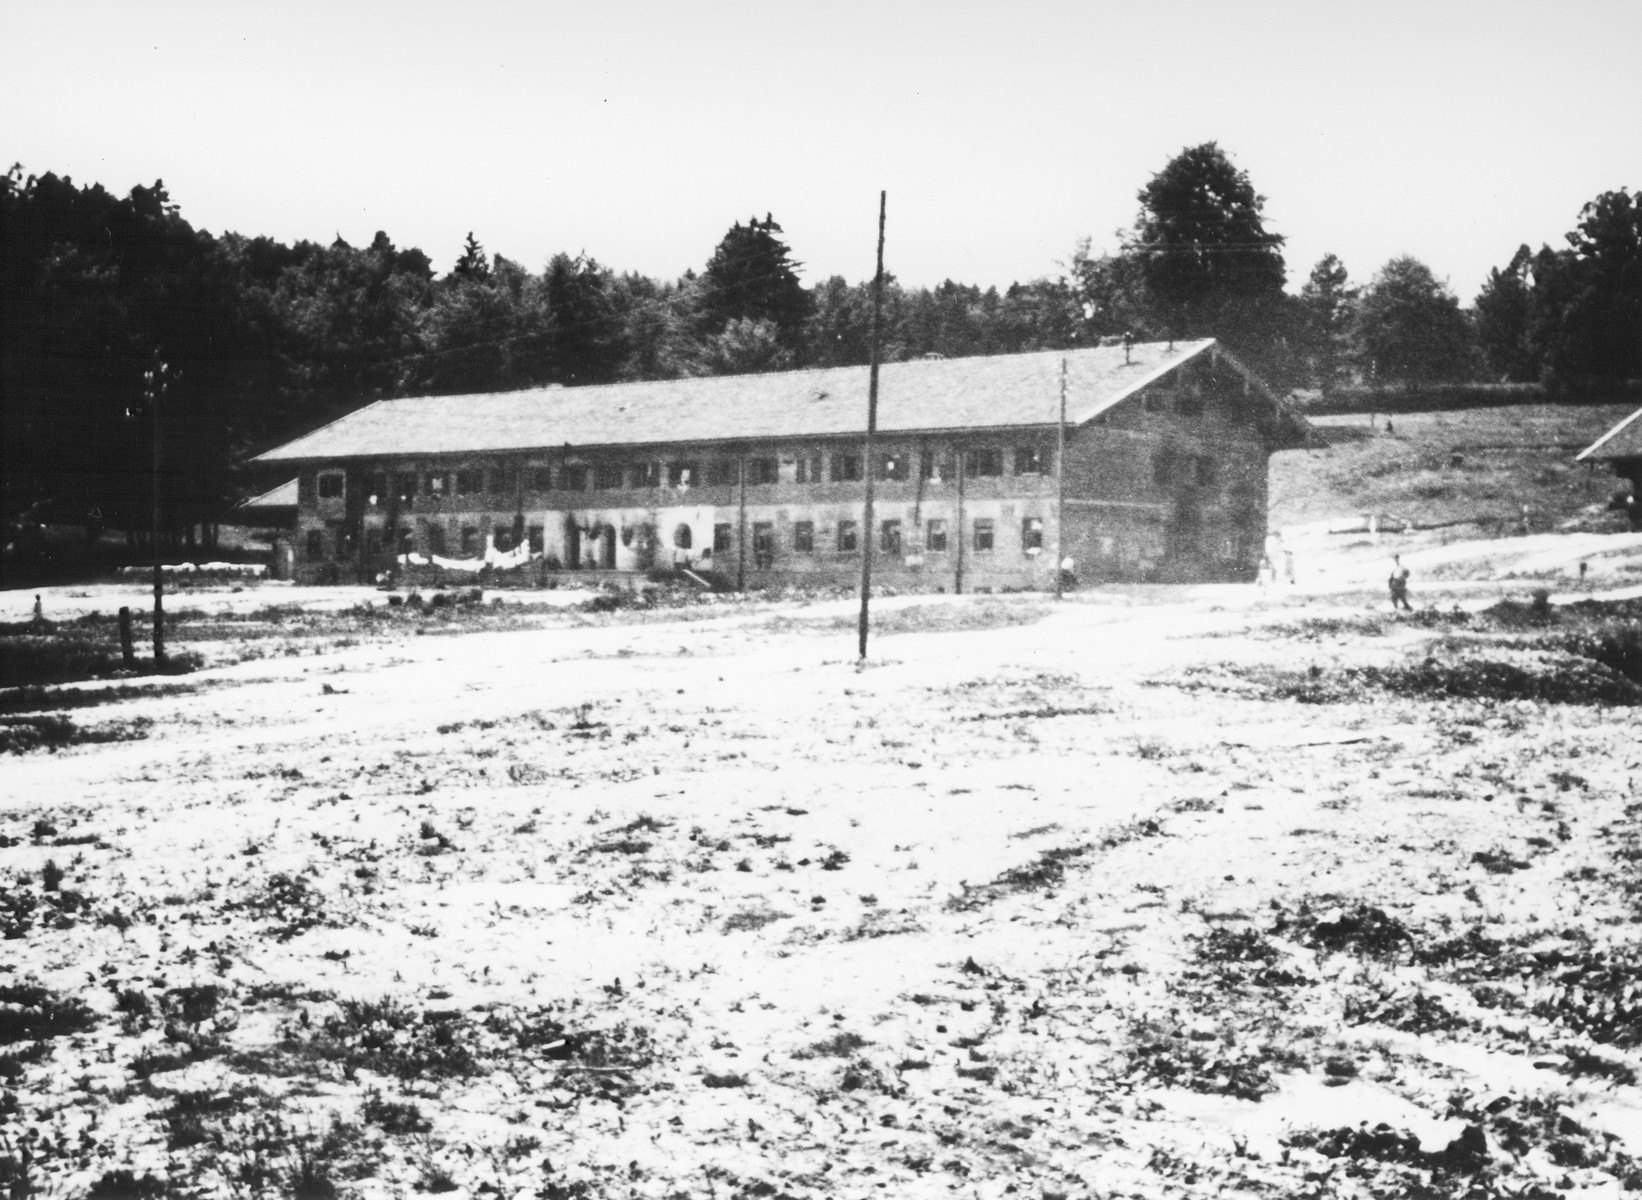 """Exterior view of the building which served as living quarters in the Feldafing DP camp.  The  building pictured is a """"Sturmblockhaus,"""" built in 1938 to house the Nationalsozialistische Deutsche Oberschule Starnberger See, established on the orders of SA-chief Ernst Roehm in 1934.  In April 1945, the school was dissolved and the building was repurposed to provide housing for displaced persons."""